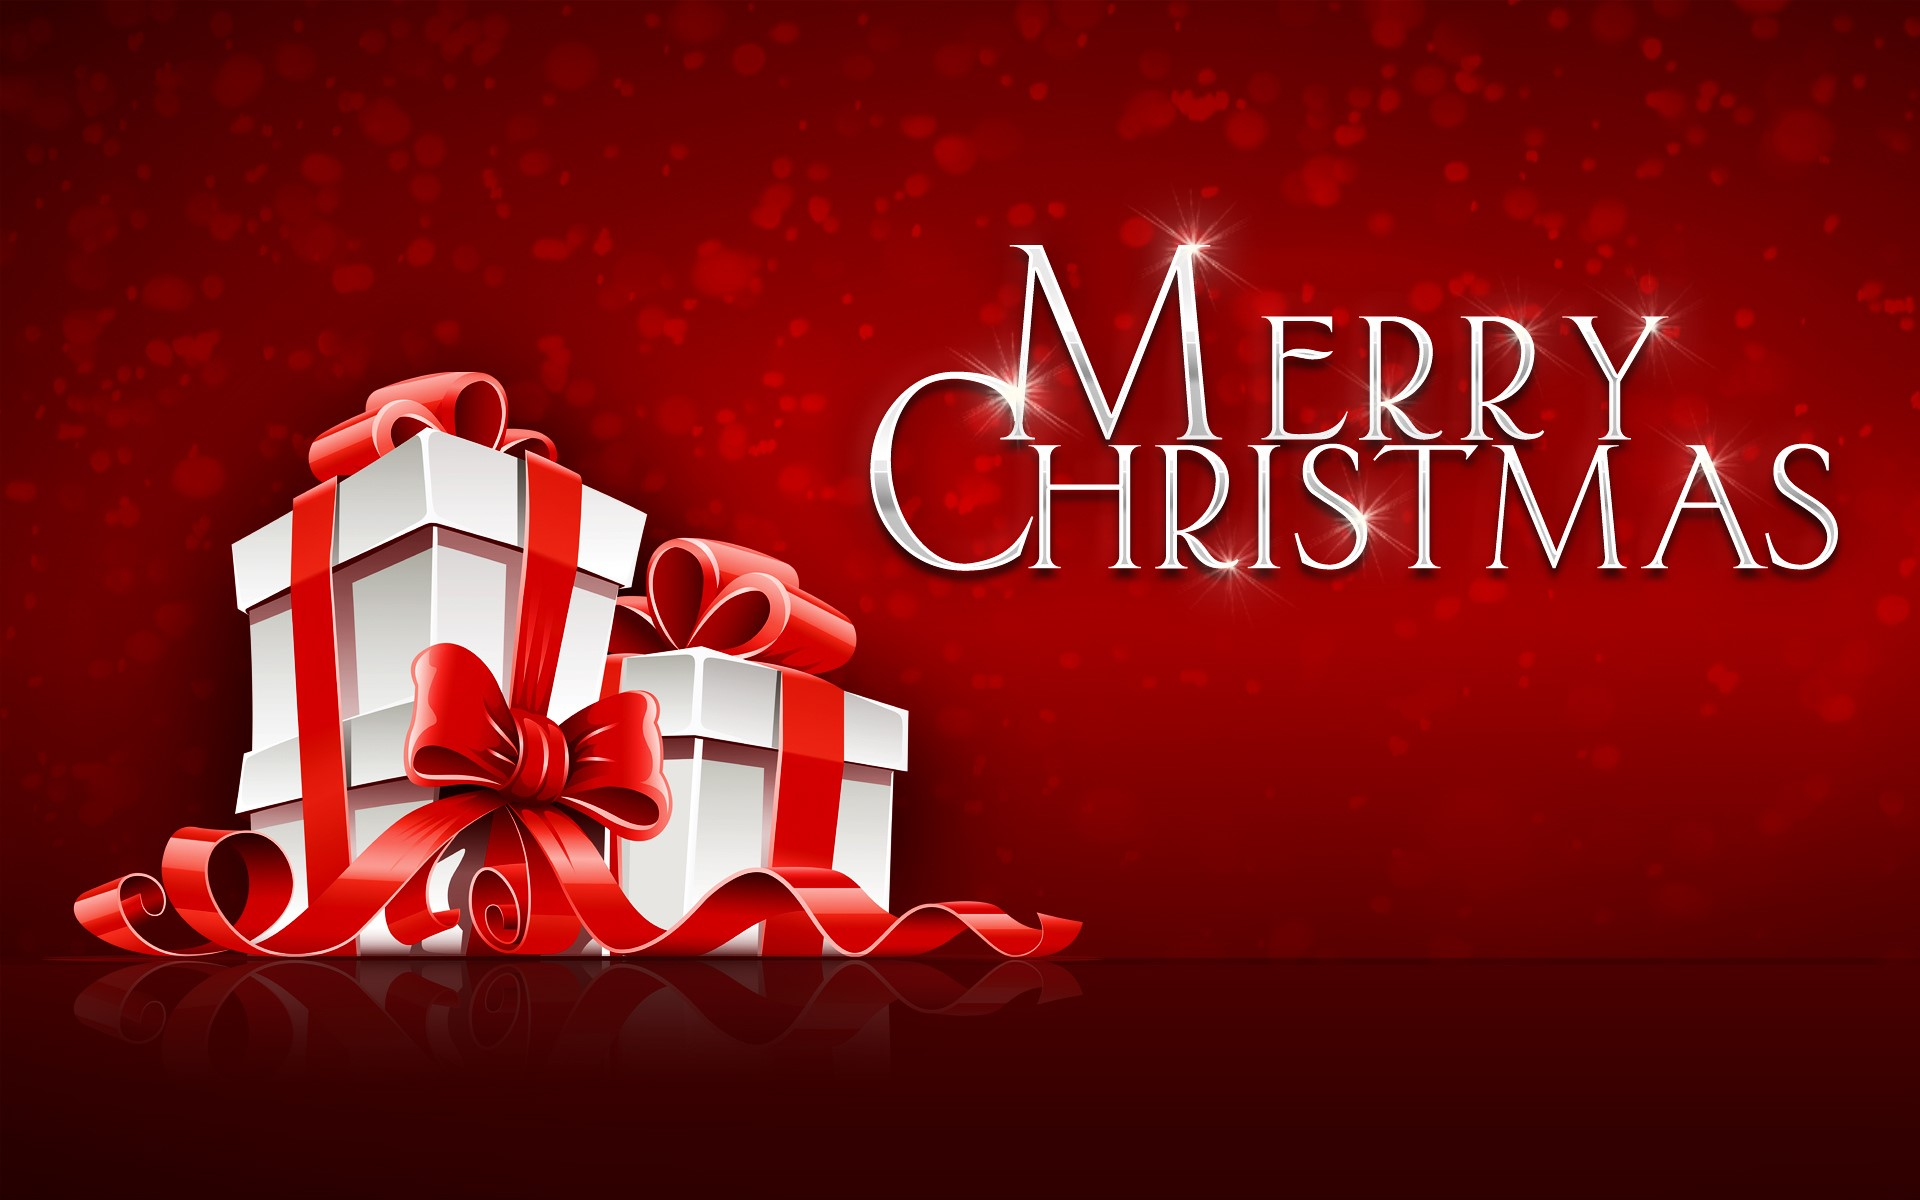 Merry Christmas Gift on Festival Red Background HD Wallpapers HD 1920x1200